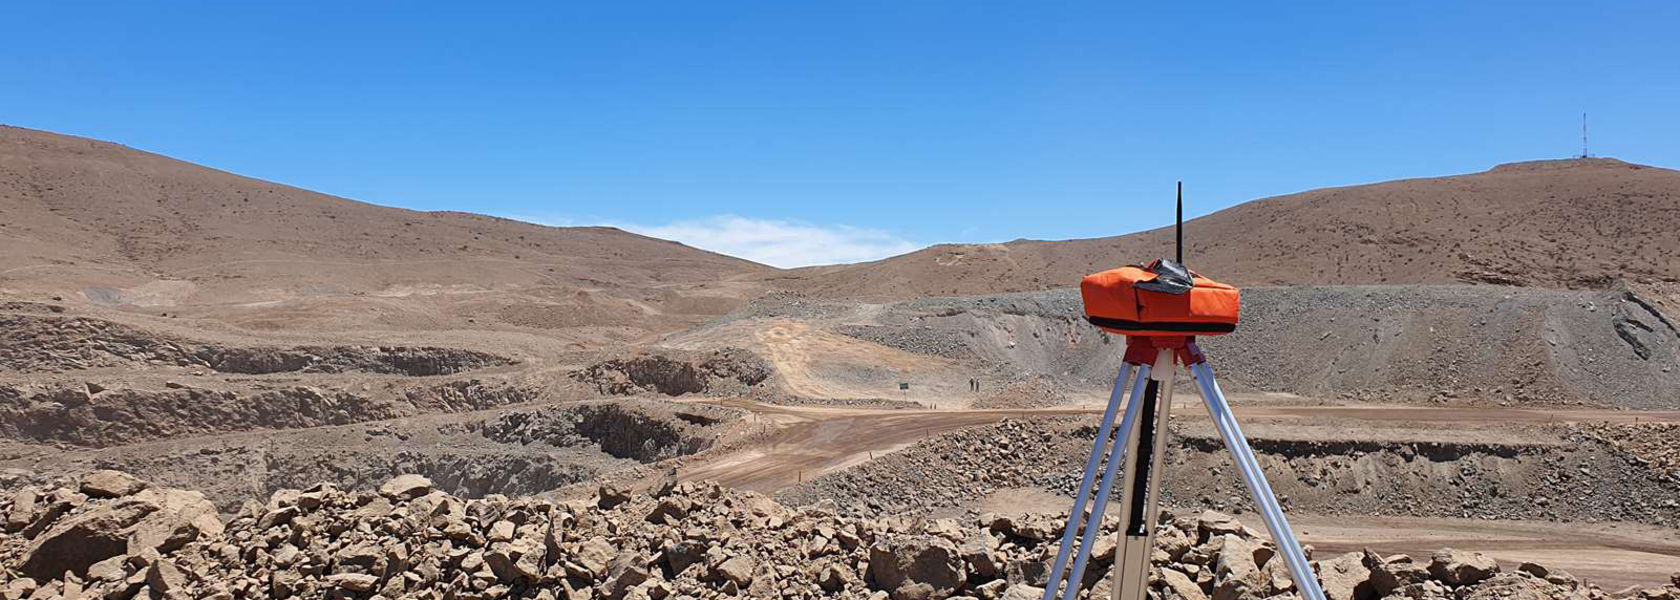 Open pit wireless detonation targets safety, productivity